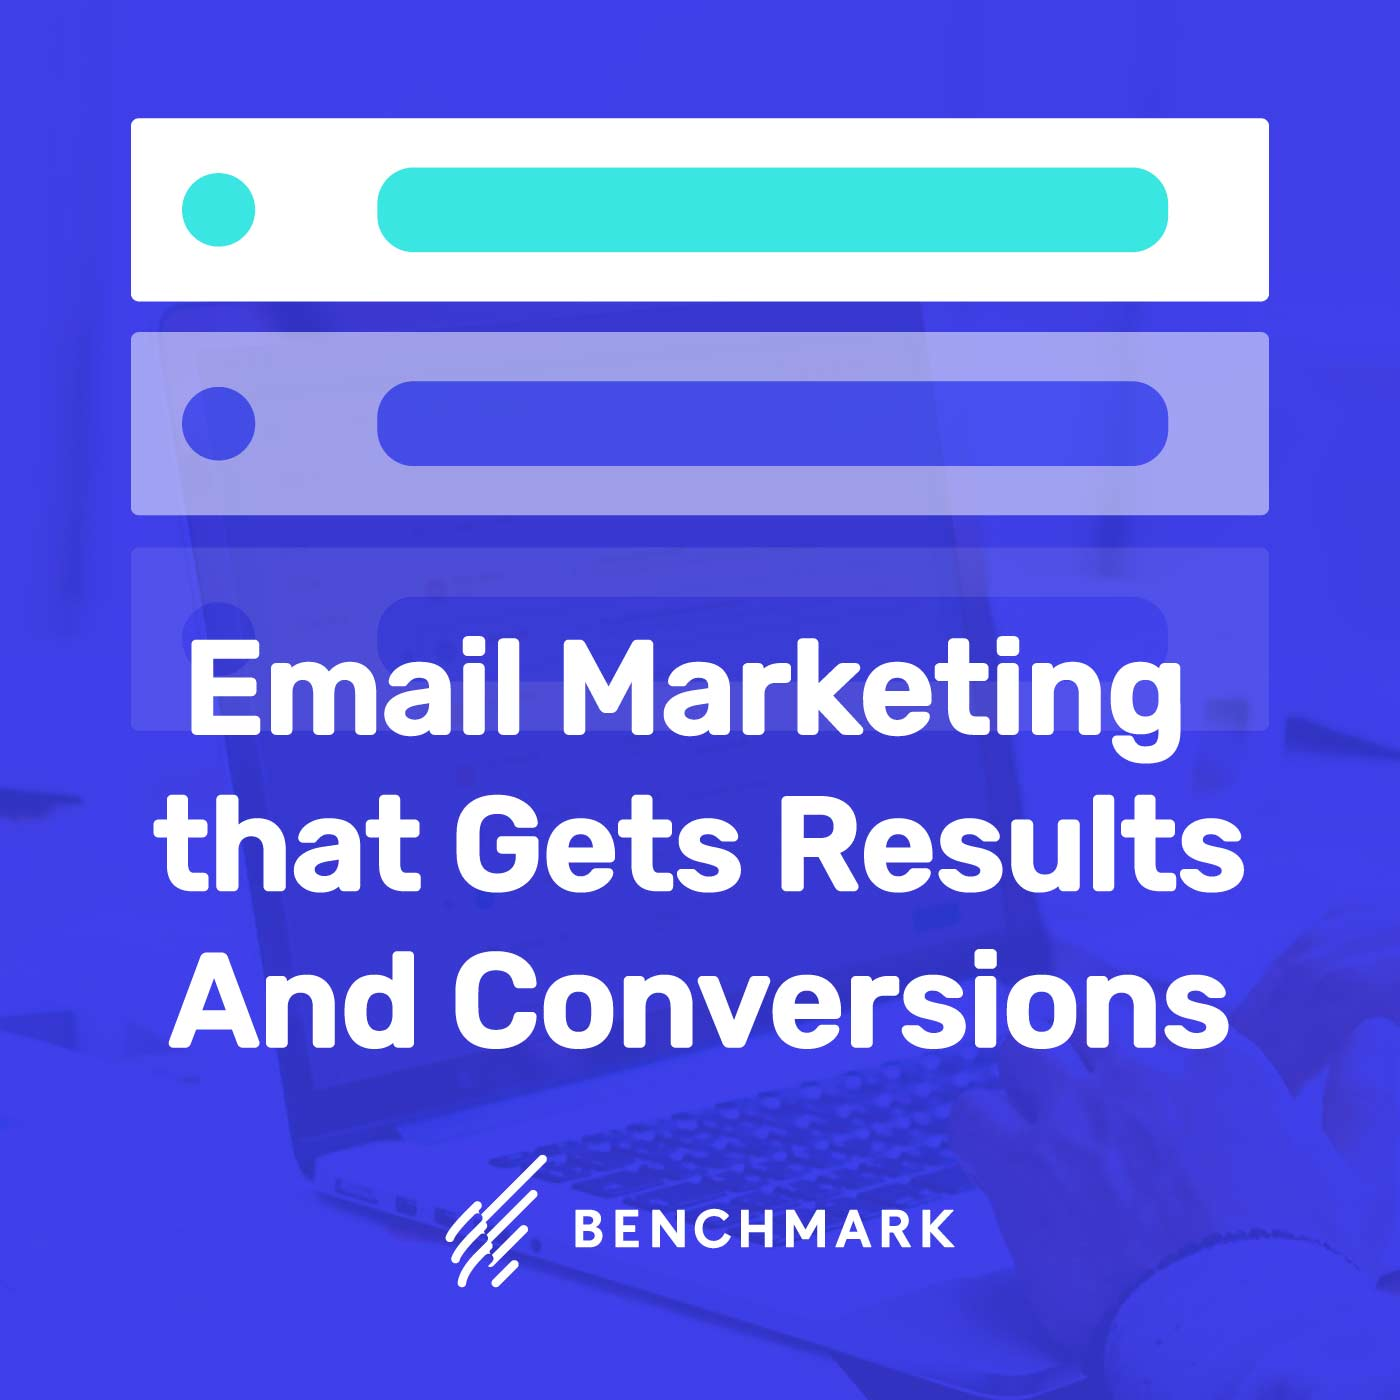 Email Marketing that Gets Results ... And Conversions